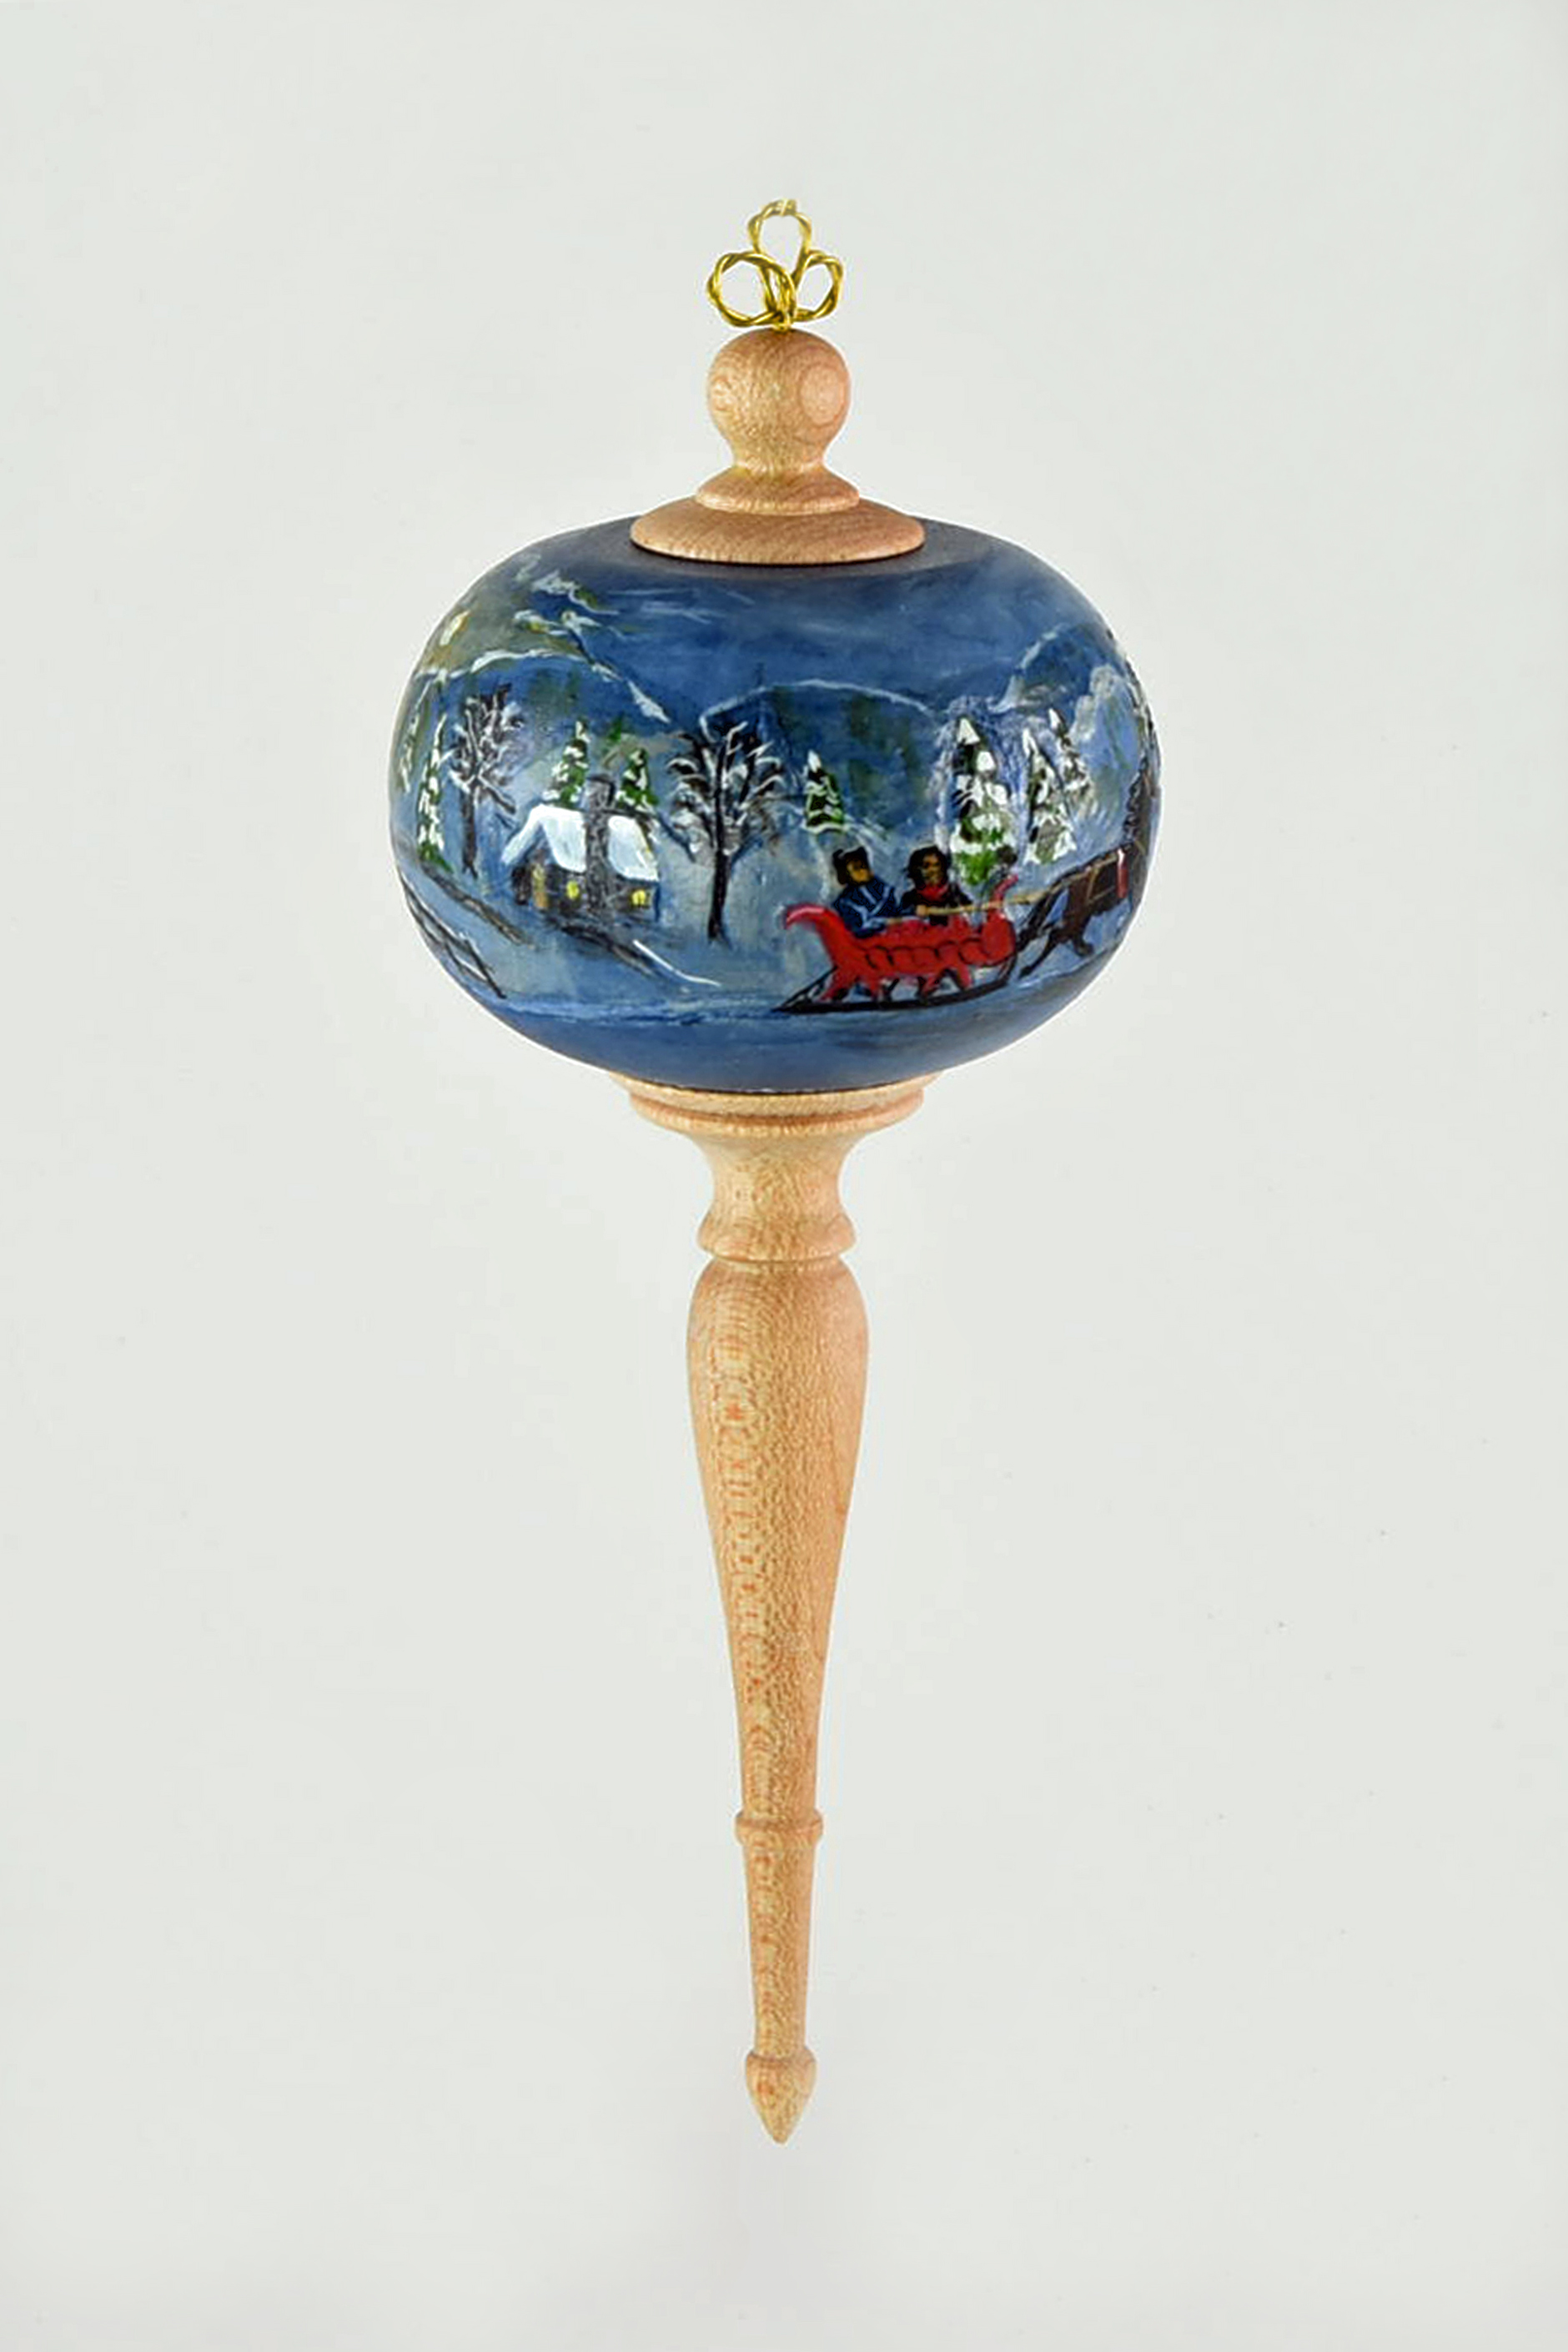 The ball was turned from basswood I wanted to pierce it but had trouble getting an even finish on the inside so I relied on my carving and painting background. I drew a continuous winter scene, relief carved and painted. The finials are made of maple.  -Joyce McCullough